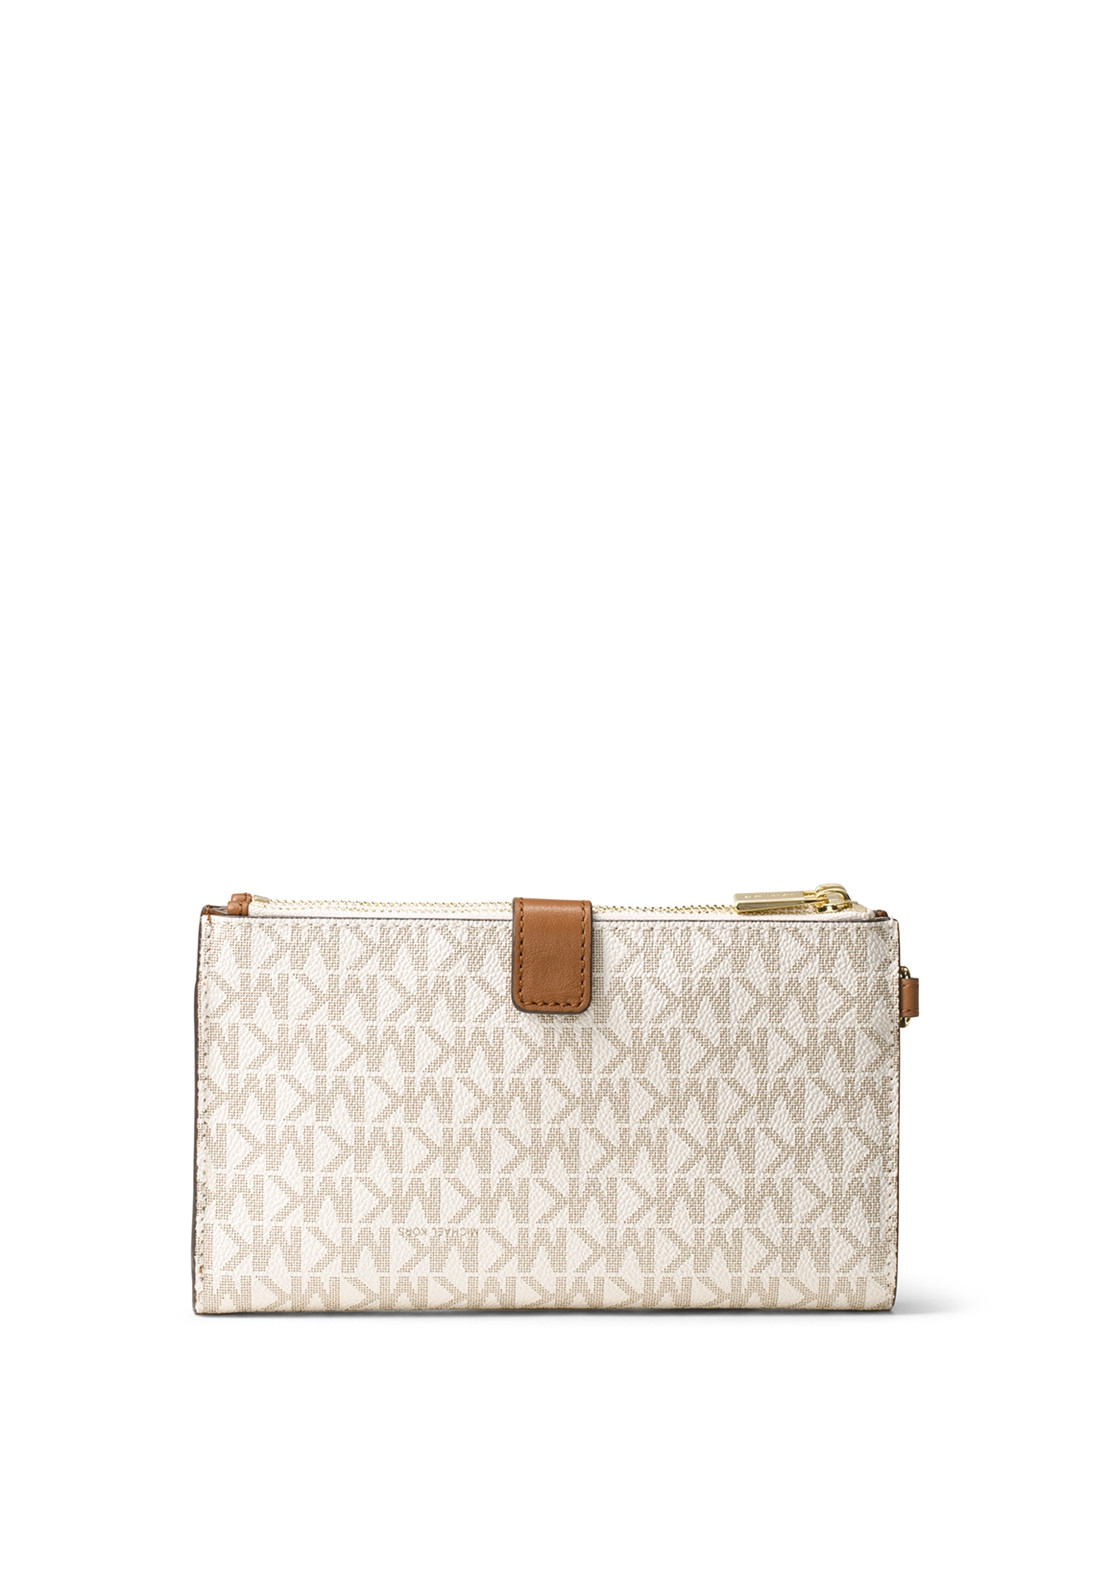 18fc95f0b010fa MICHAEL Michael Kors Adele Leather Wristlet Wallet, Vanilla. Be the first  to review this product